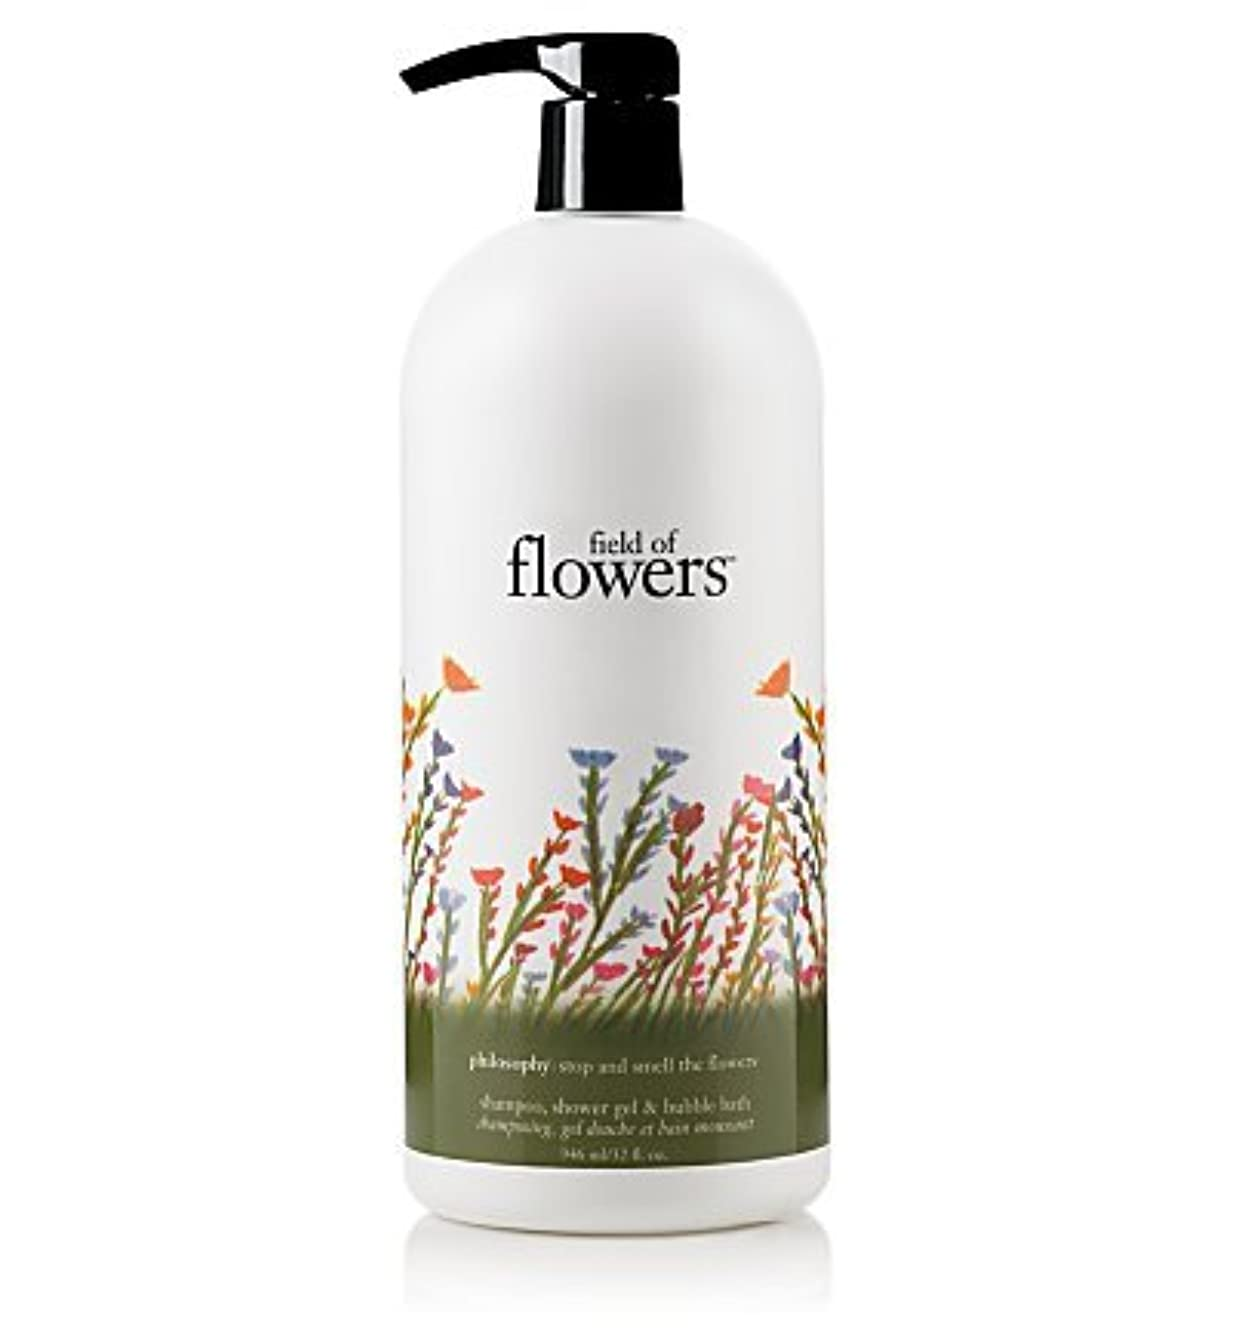 真実メモ生理field of flowers (フィールド オブ フラワーズ) 32.0 oz (960ml) shampoo, shower gel & bubble bath for Women